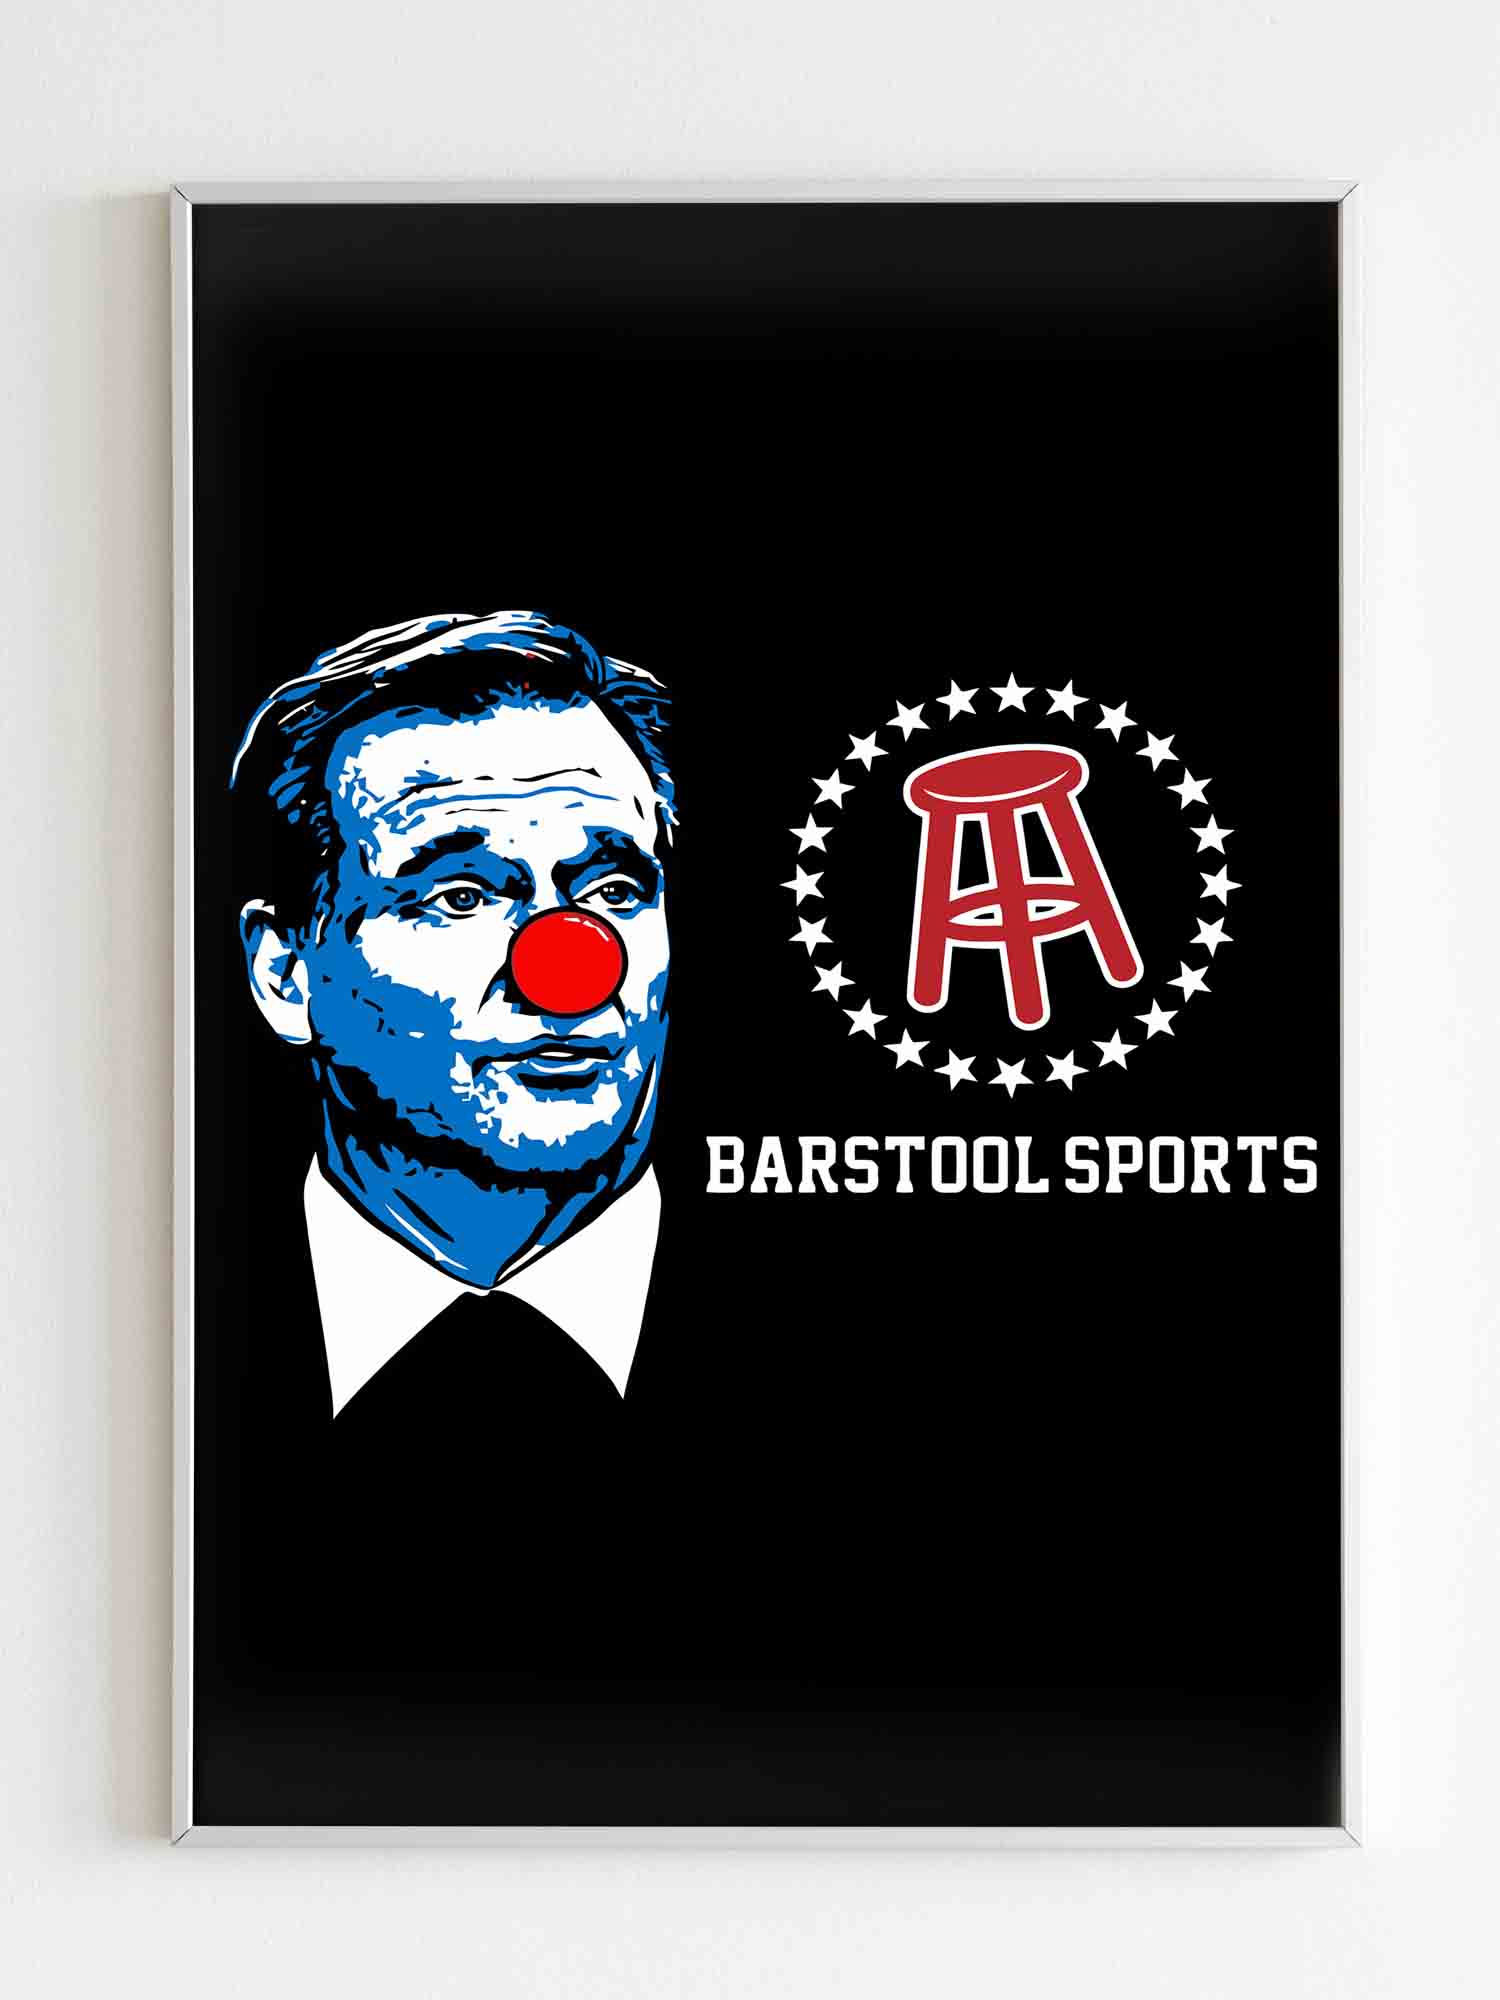 Barstool Sports Roger Goodell Clown Poster